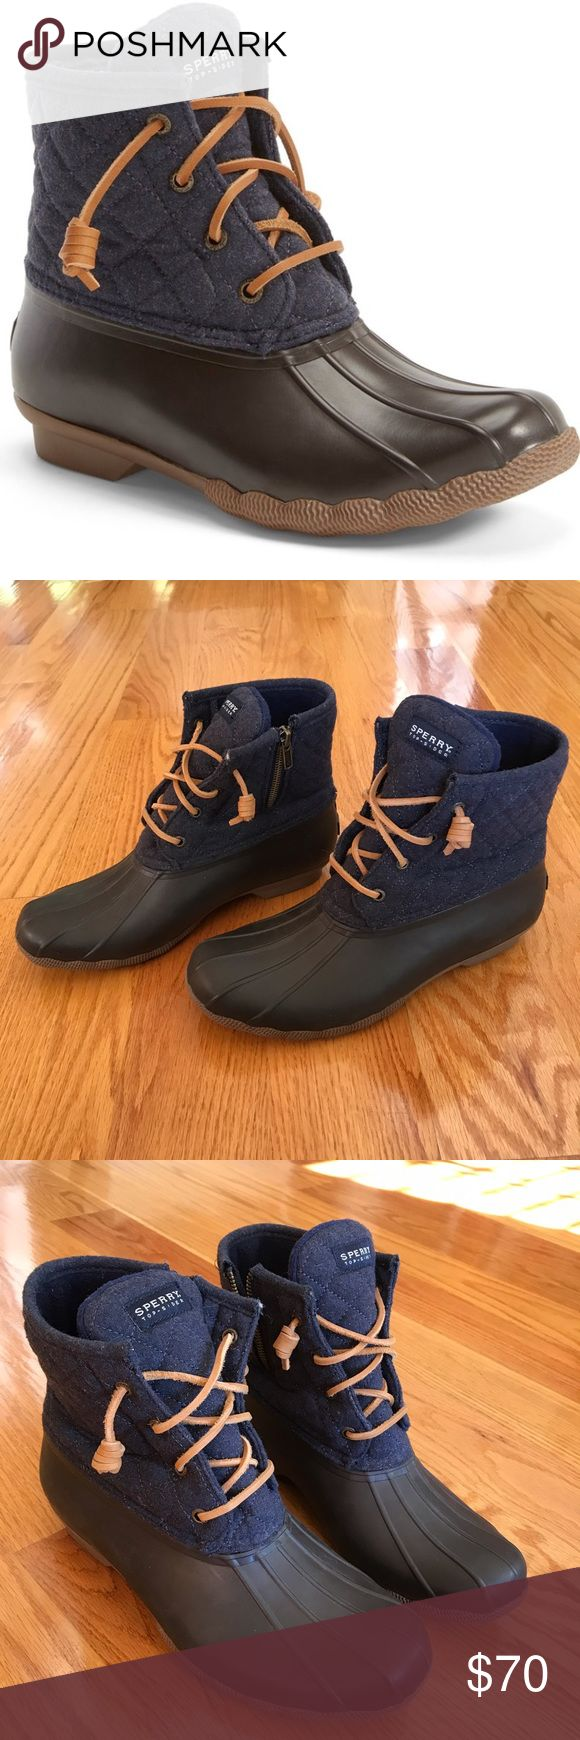 Sperry Rain boots /sperry-top-sider-saltwater-waterproof-rain-boot-navy-brown-wool- have been worn couple times but they are in new condition, no flaws at all 🚫no trades Sperry Top-Sider Shoes Winter & Rain Boots